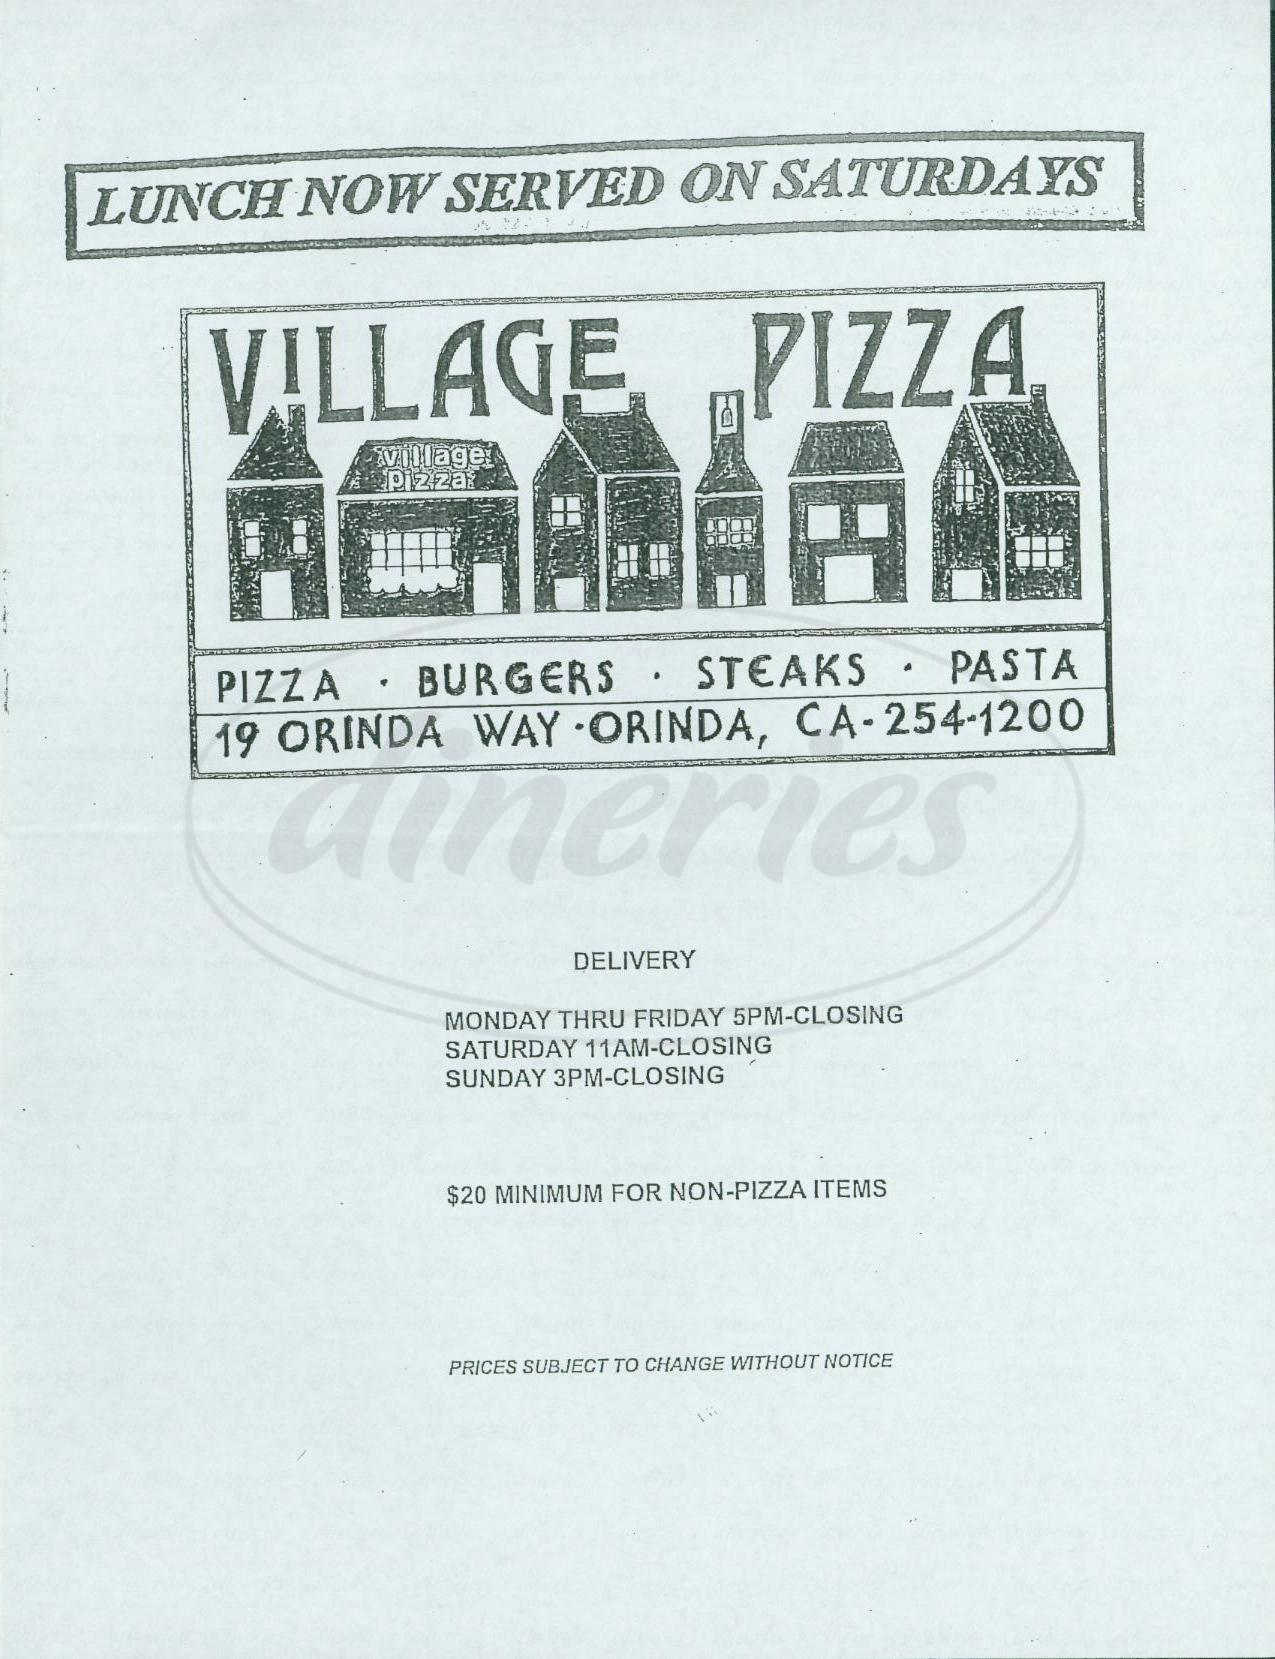 menu for Village Pizza